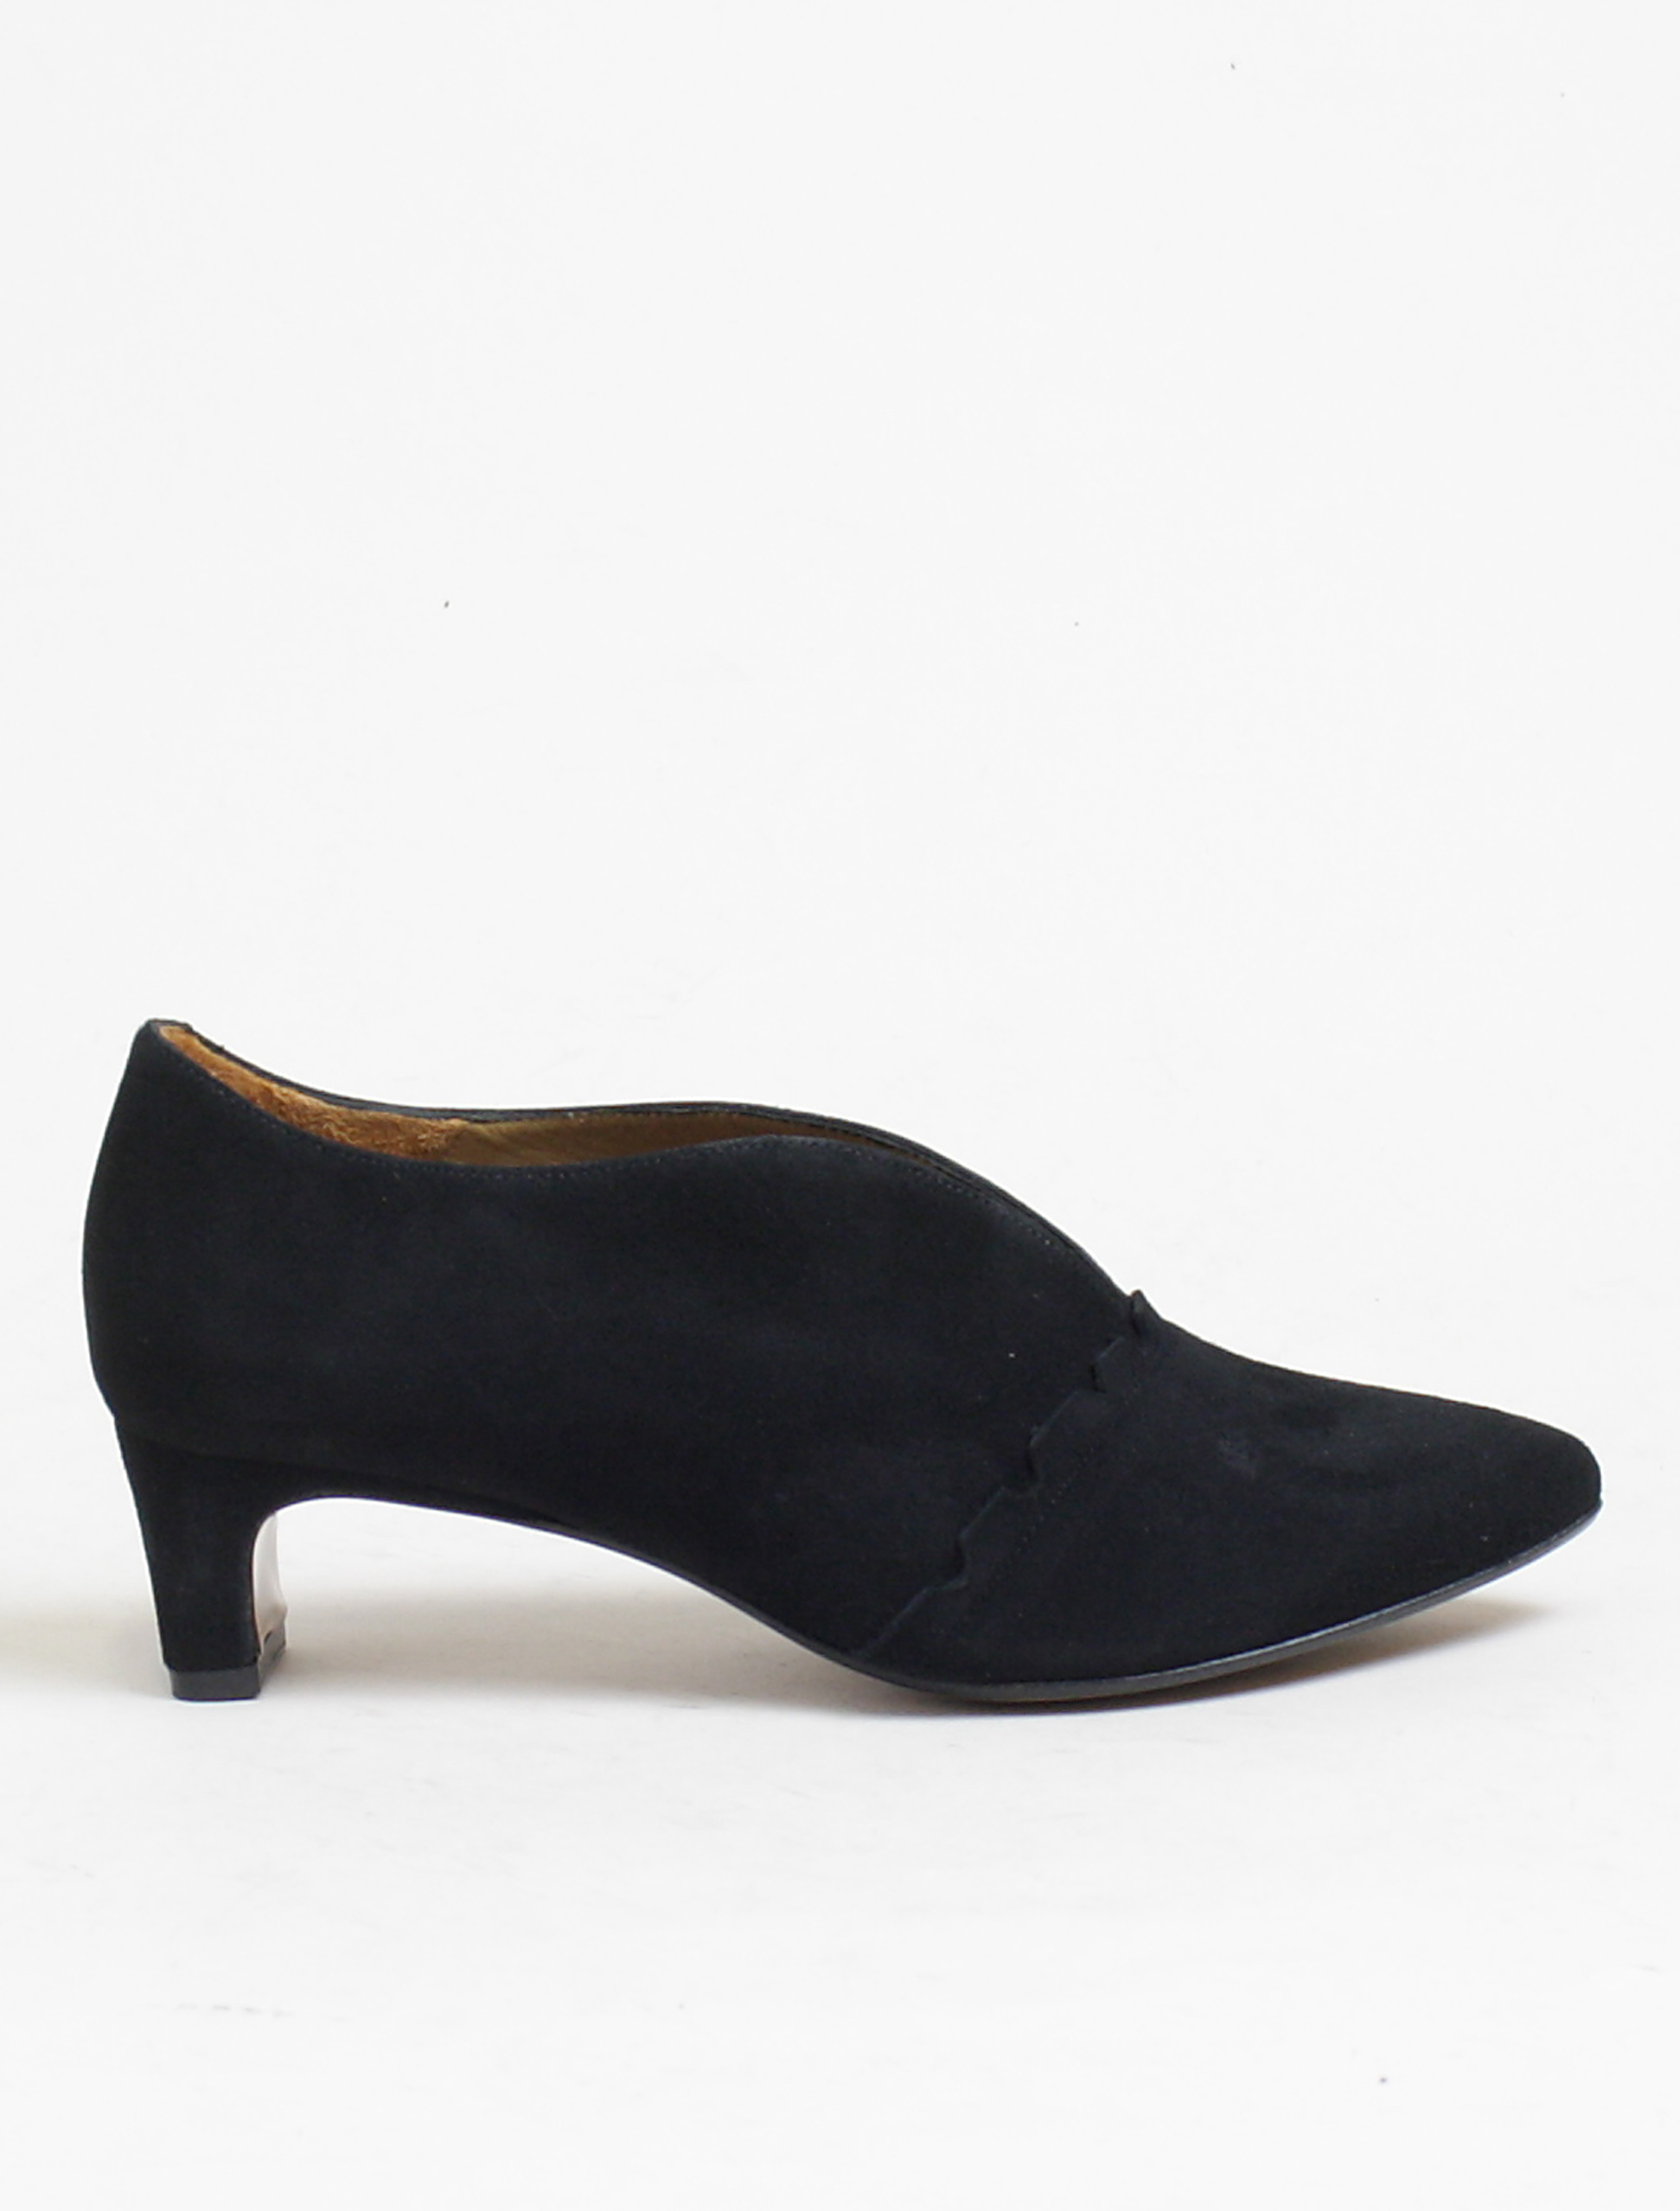 Audley 20742 decolletè suede black